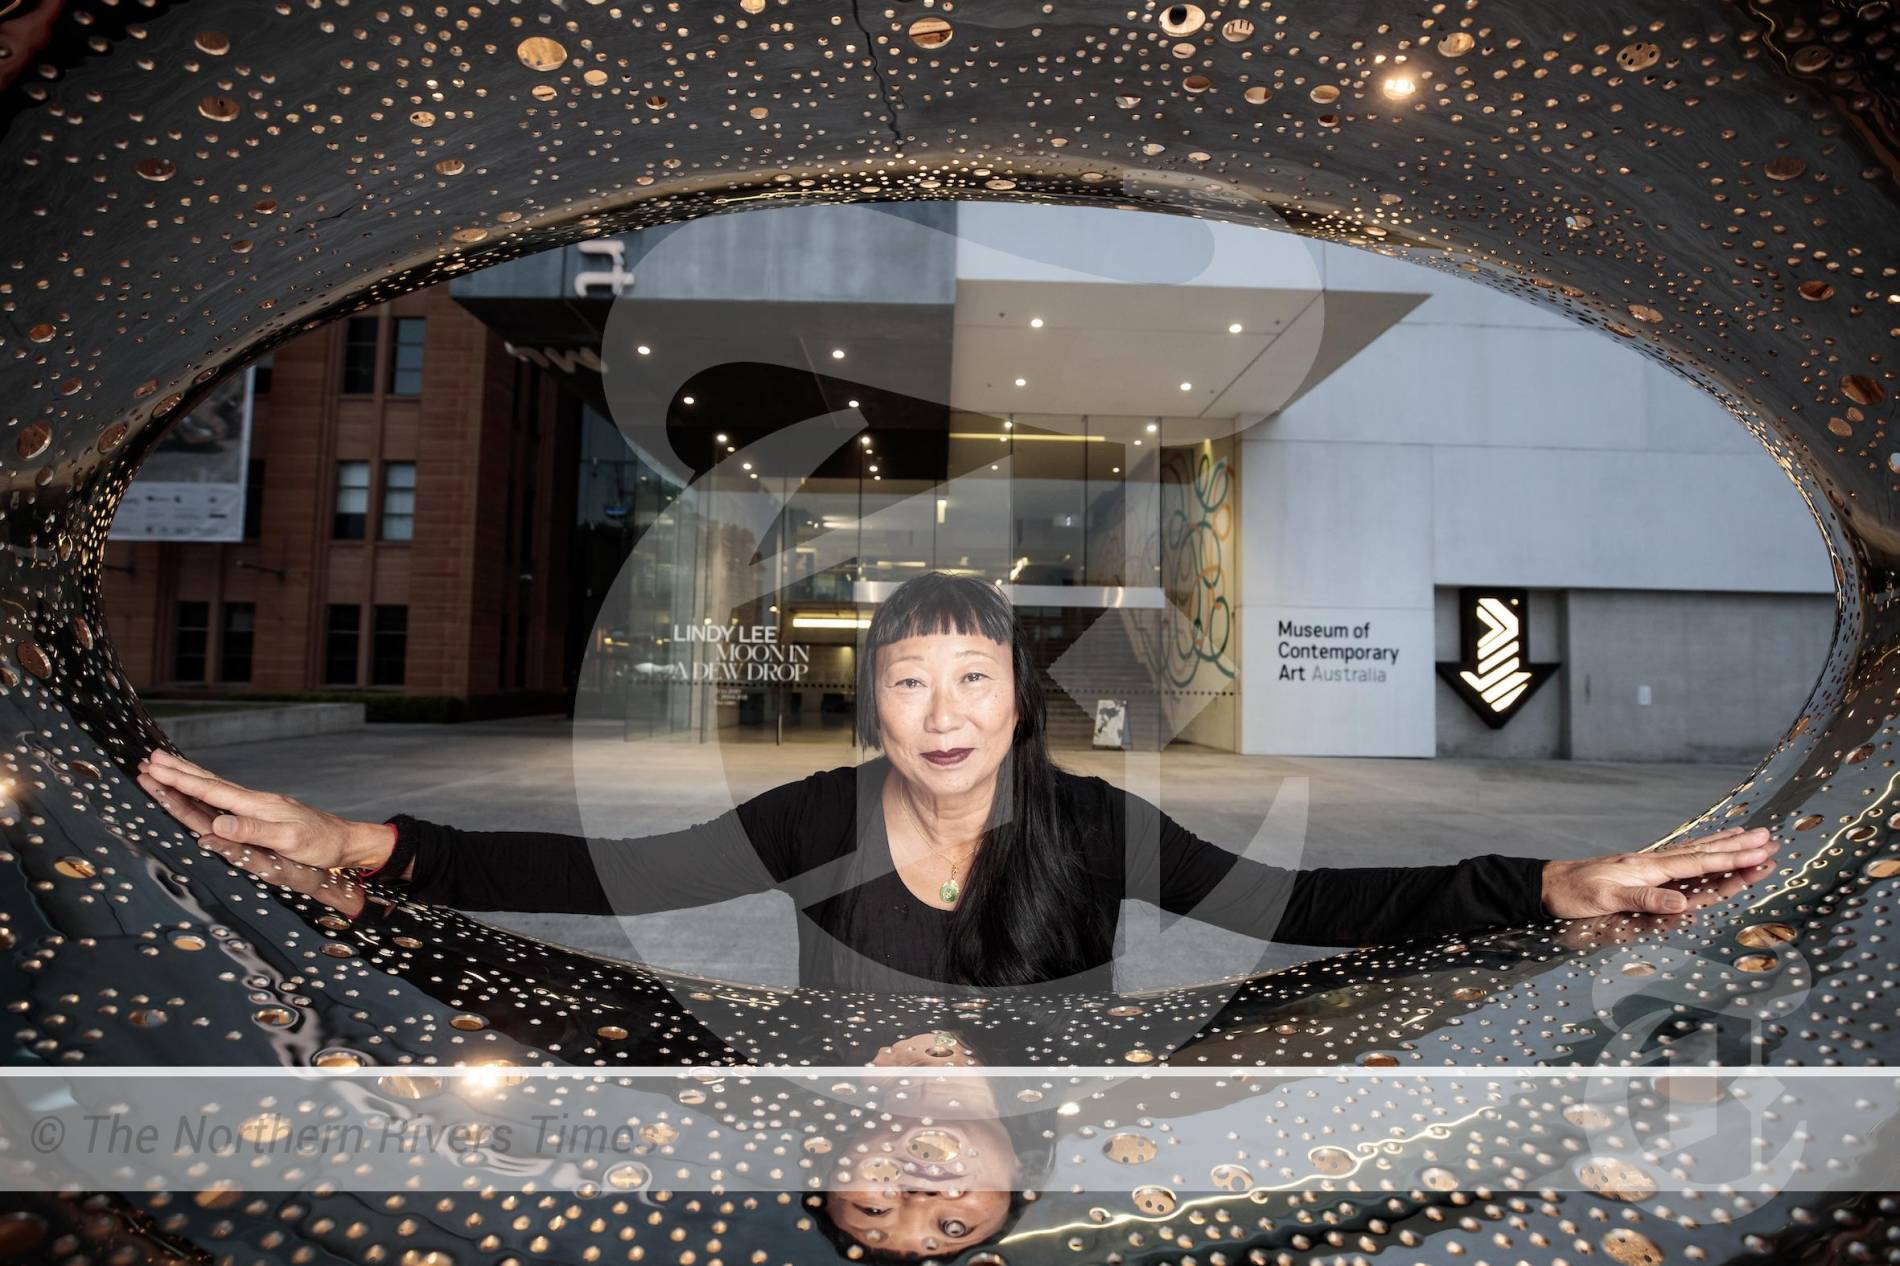 MCA presents national exhibition tour of Australian Chinese Artist Lindy Lee at Lismore Regional Gallery.